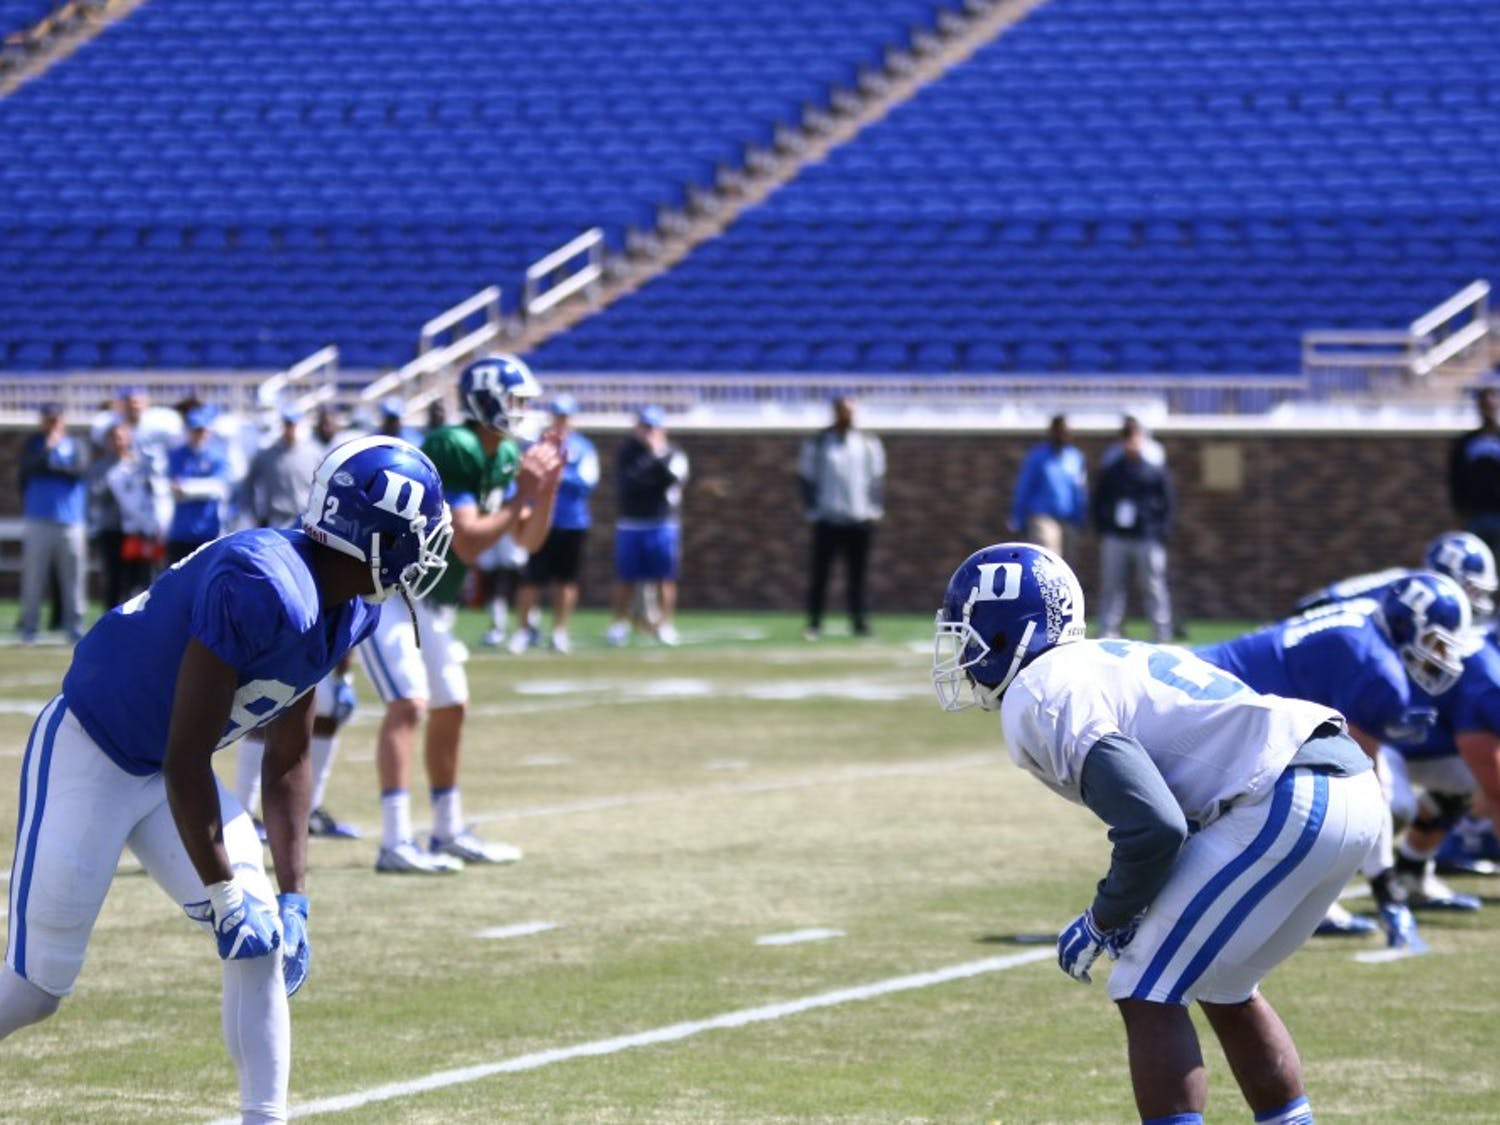 Duke's defense forced three turnovers during the scrimmage Saturday, including a fumble recovery by DeVon Edwards and an interception return for a touchdown by Joe Giles-Harris.